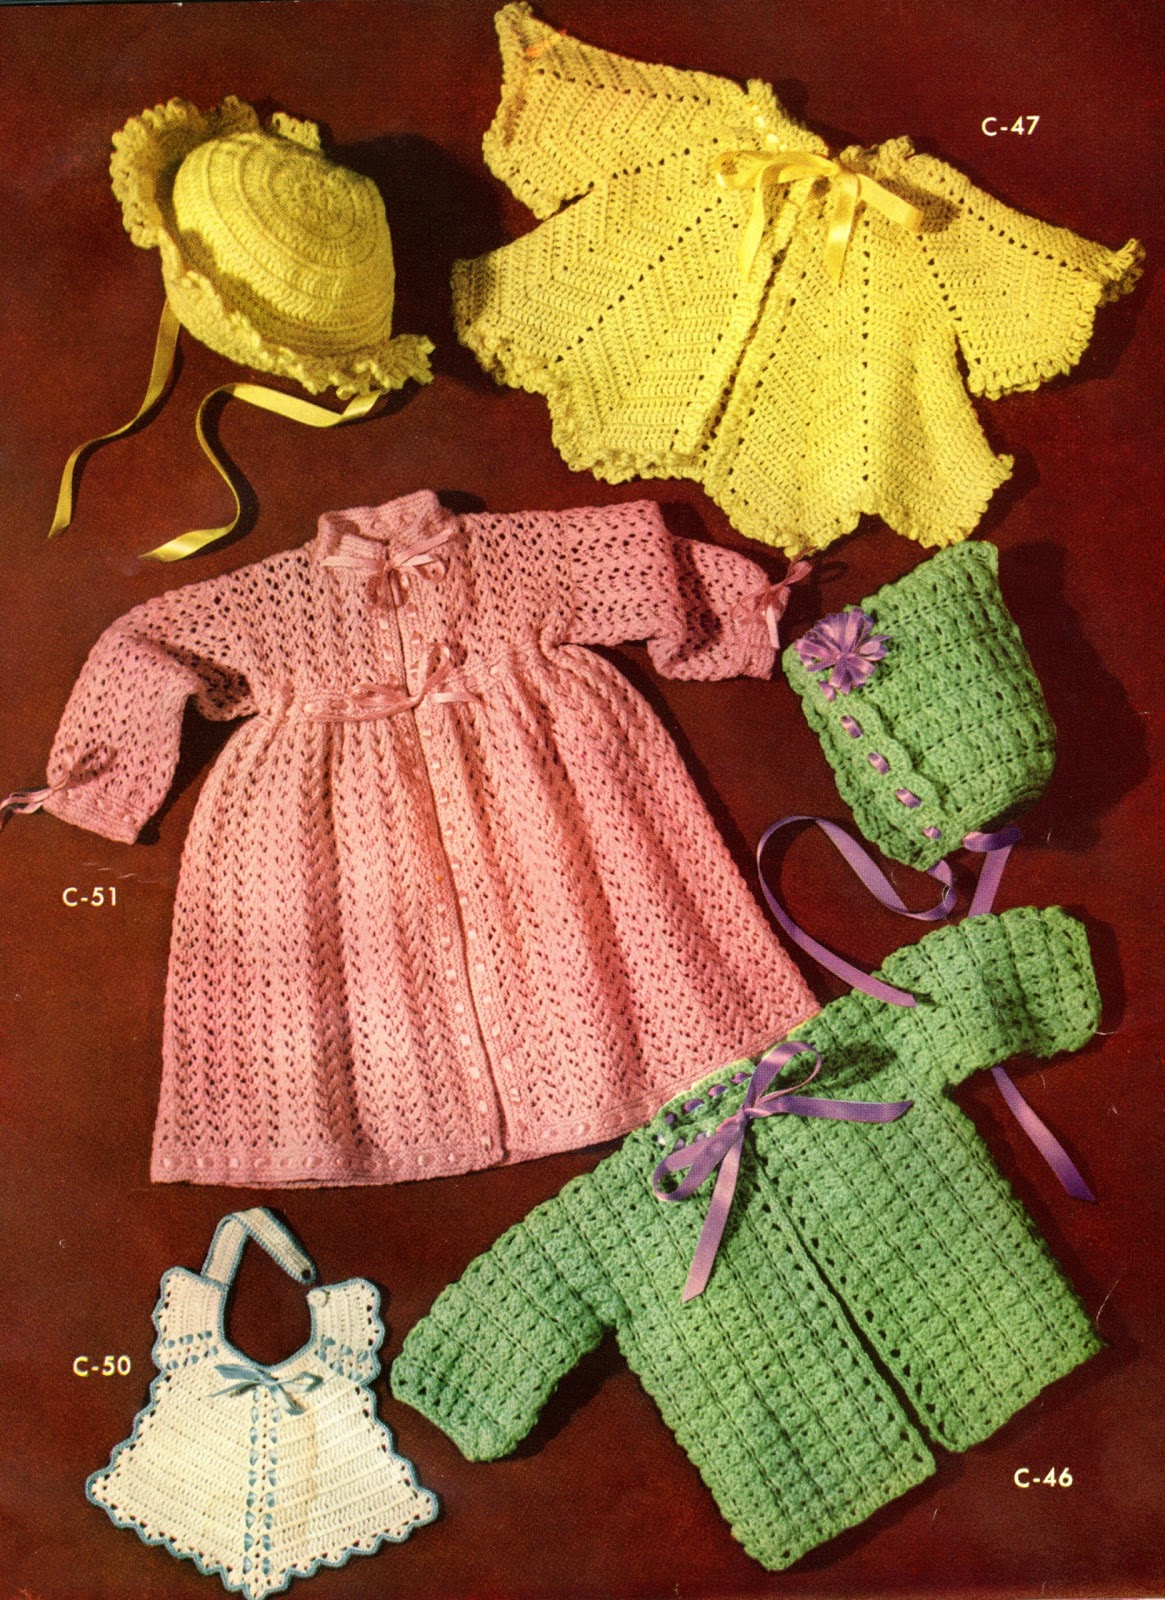 Donna S Crochet Designs Blog Of Free Patterns Great